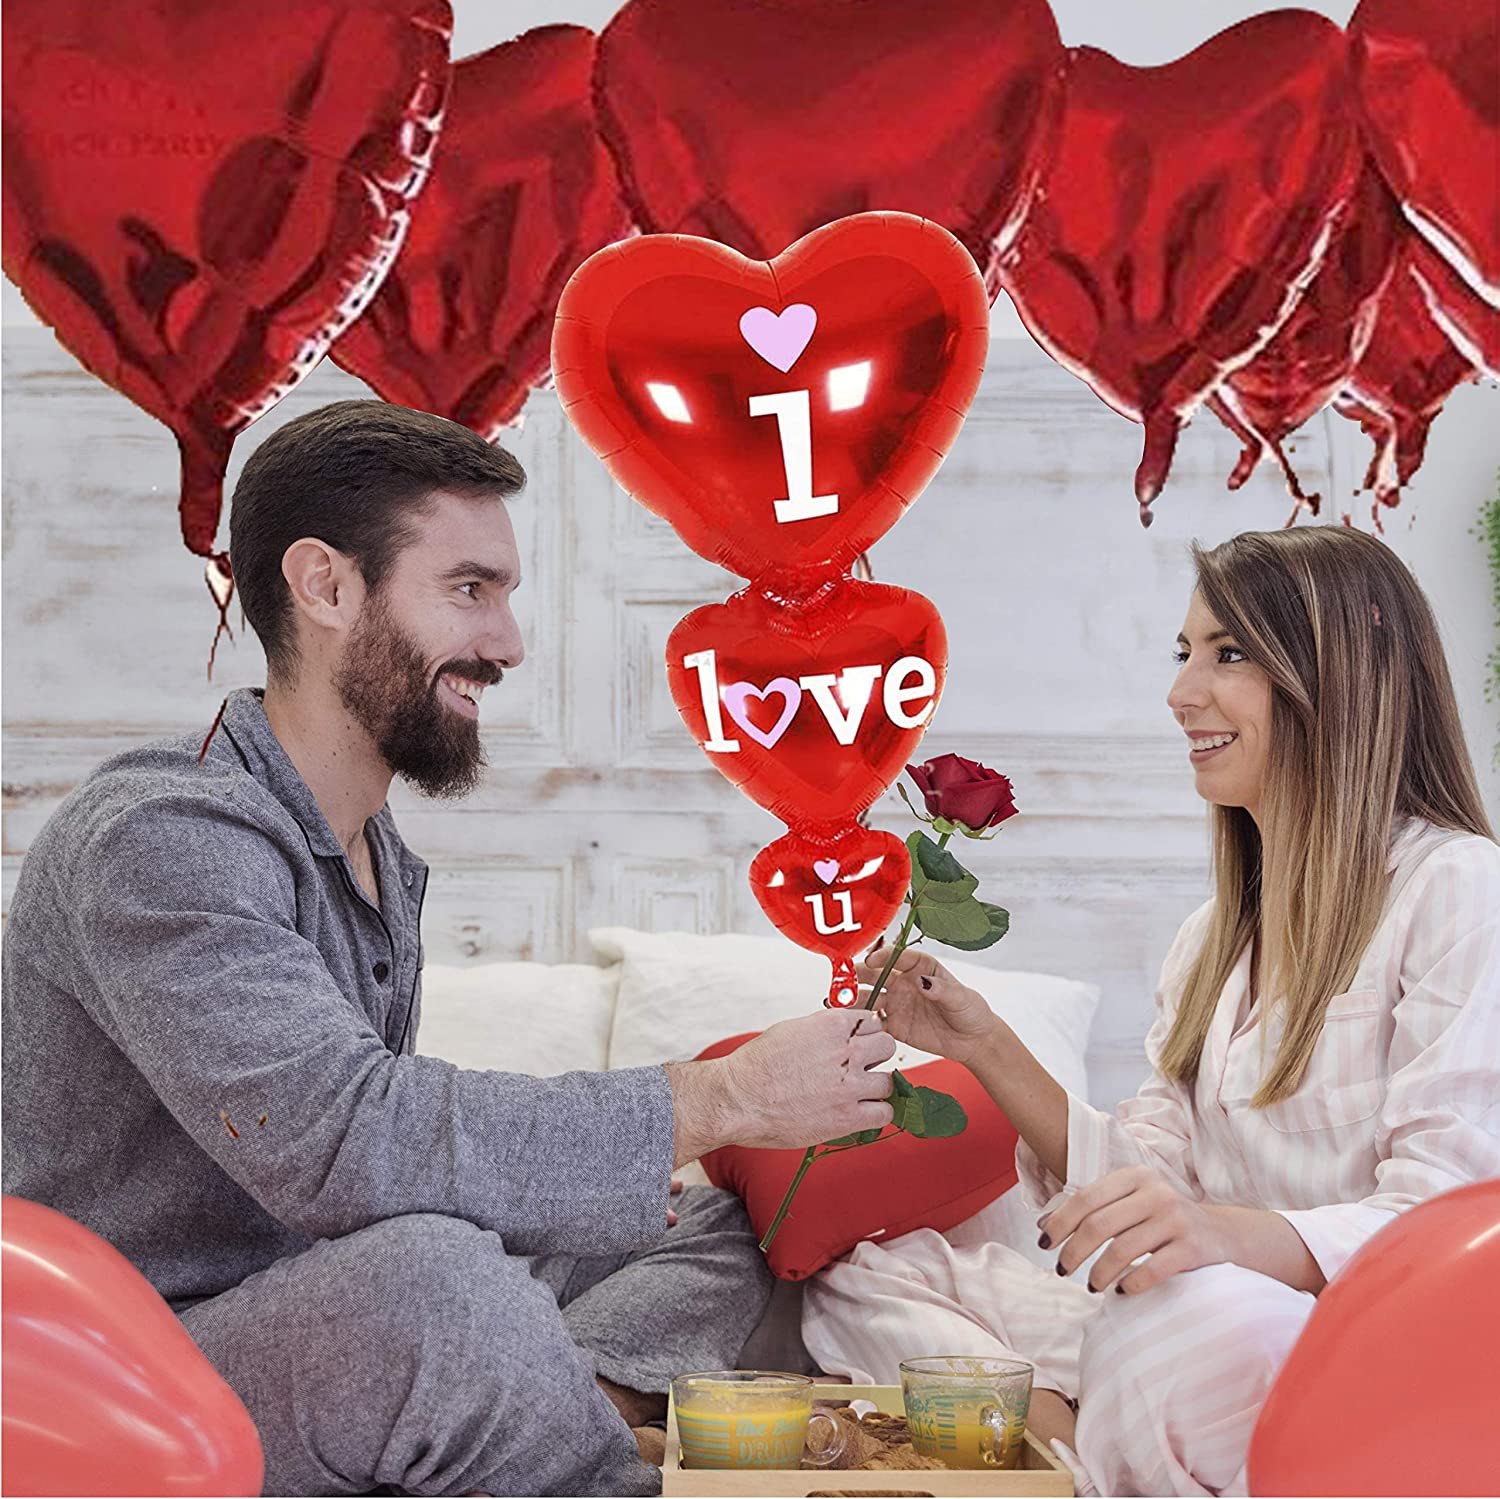 Wedding Flower Decoration 1pcs I Love U Balloon Valentine/'s Day Decorations for Party Heart Shaped Balloons 11pcs Heart Balloon 11+1